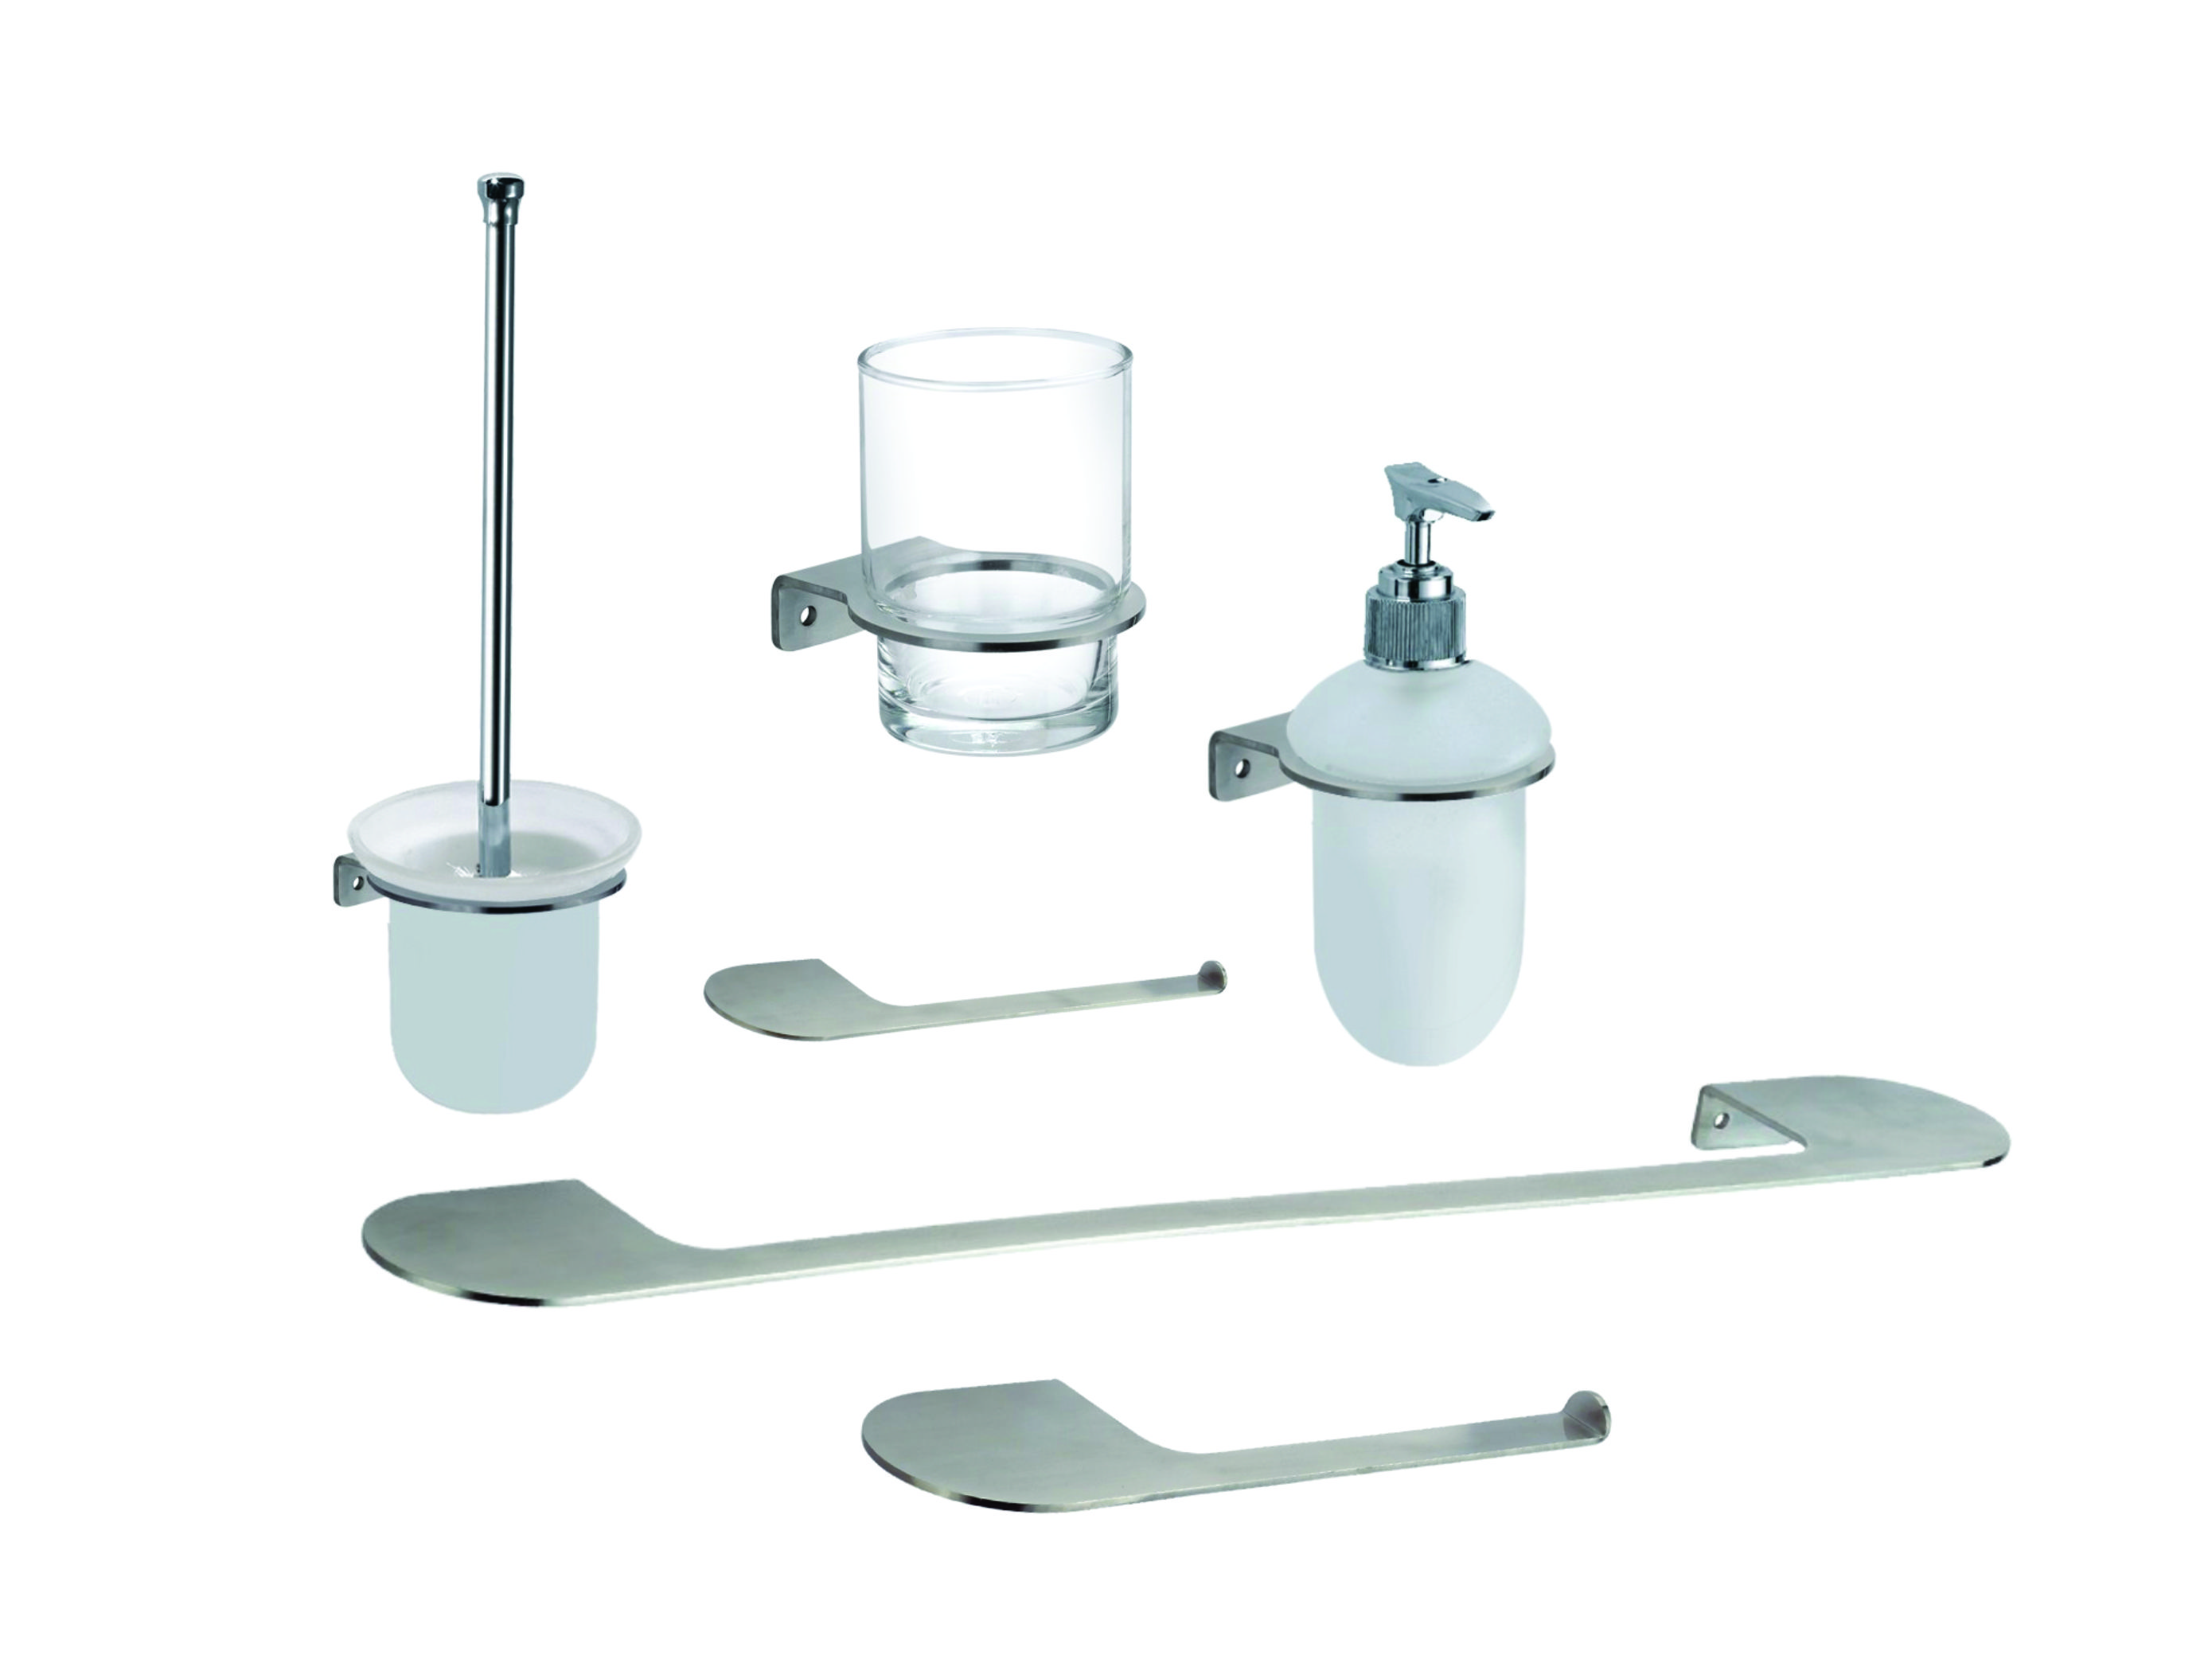 Complete Bathroom Sets What Experts 28 Images Complete Bathroom Sets 28 Images Complete